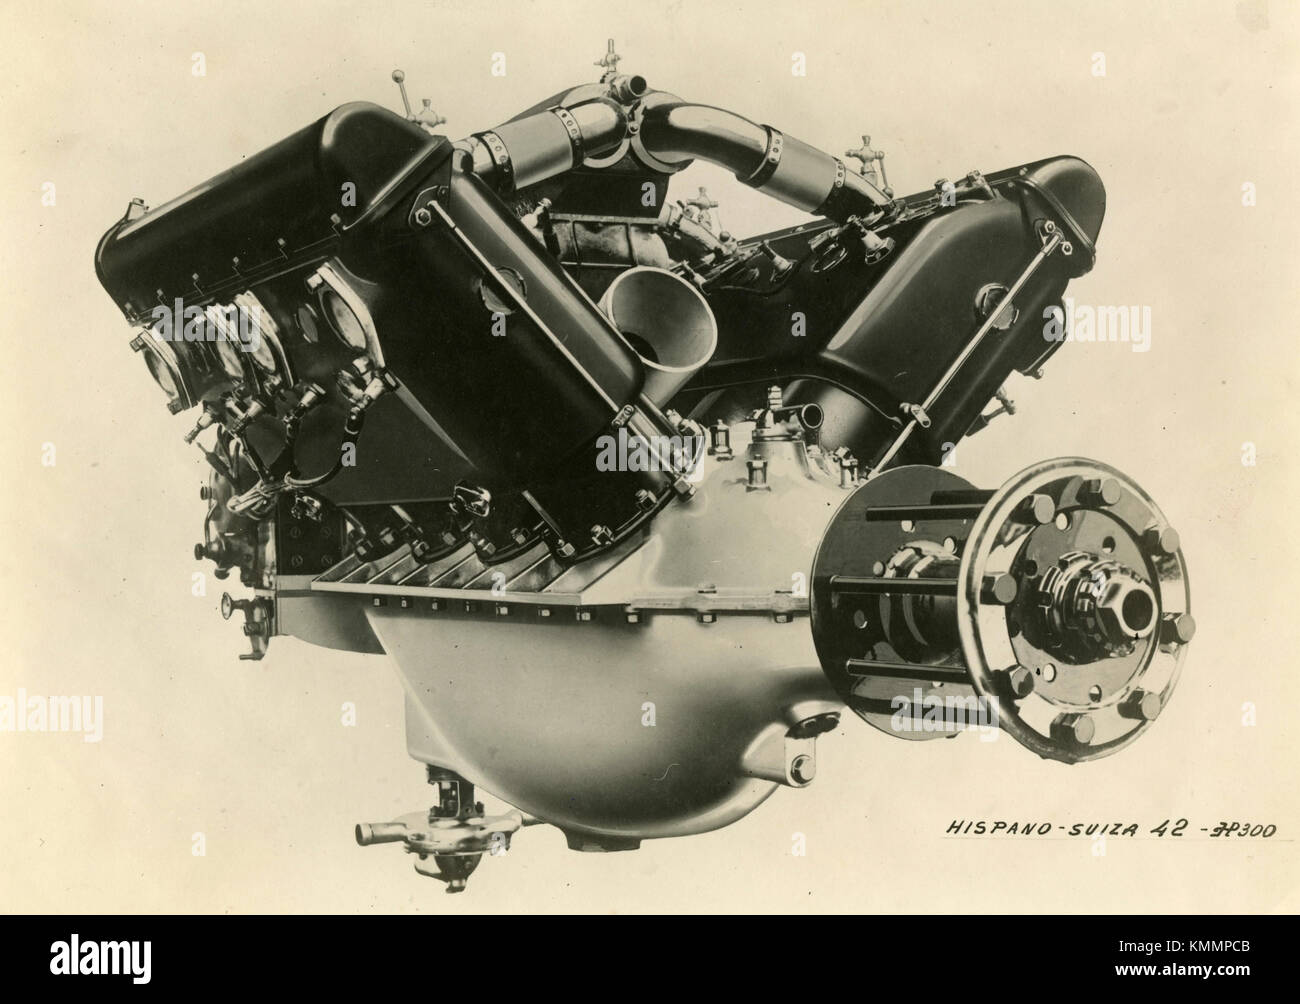 Hispano Suiza aircraft engine 42 HP 300, back view, France 1920s - Stock Image